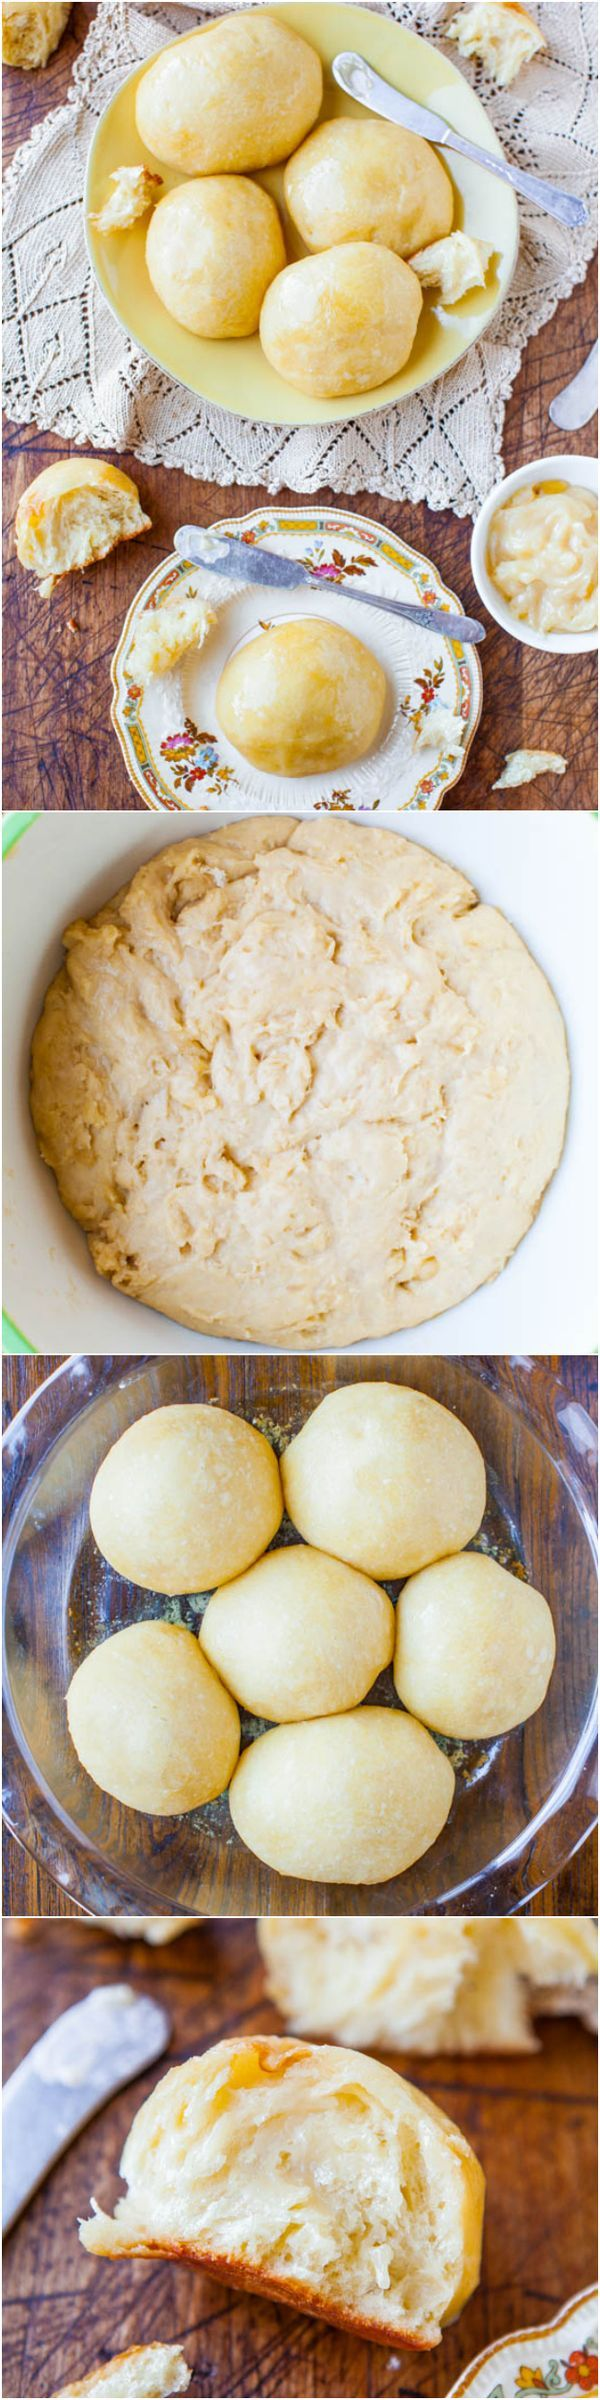 No-Knead Make-Ahead Dinner Rolls with Honey Butter - The easiest dinner rolls ever! No kneading, no fuss & you can make the dough ahead of time! Perfect for holiday meals & parties. Easy recipe at averiecooks.com